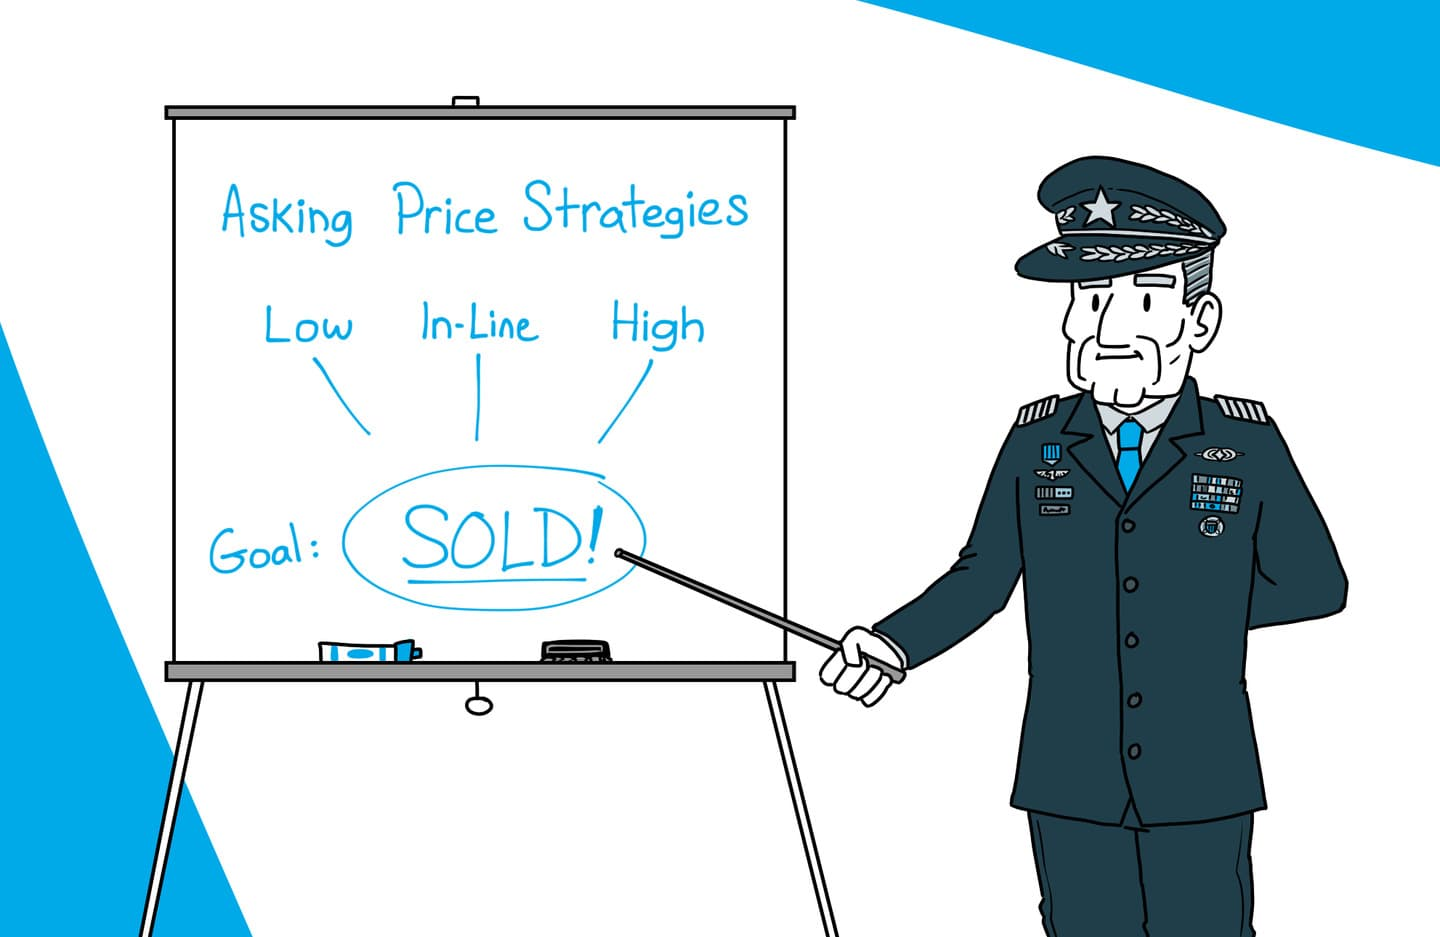 General pointing to presentation which outlines the asking price strategies to get the apartment sold. The options are Low, In-Line or High.